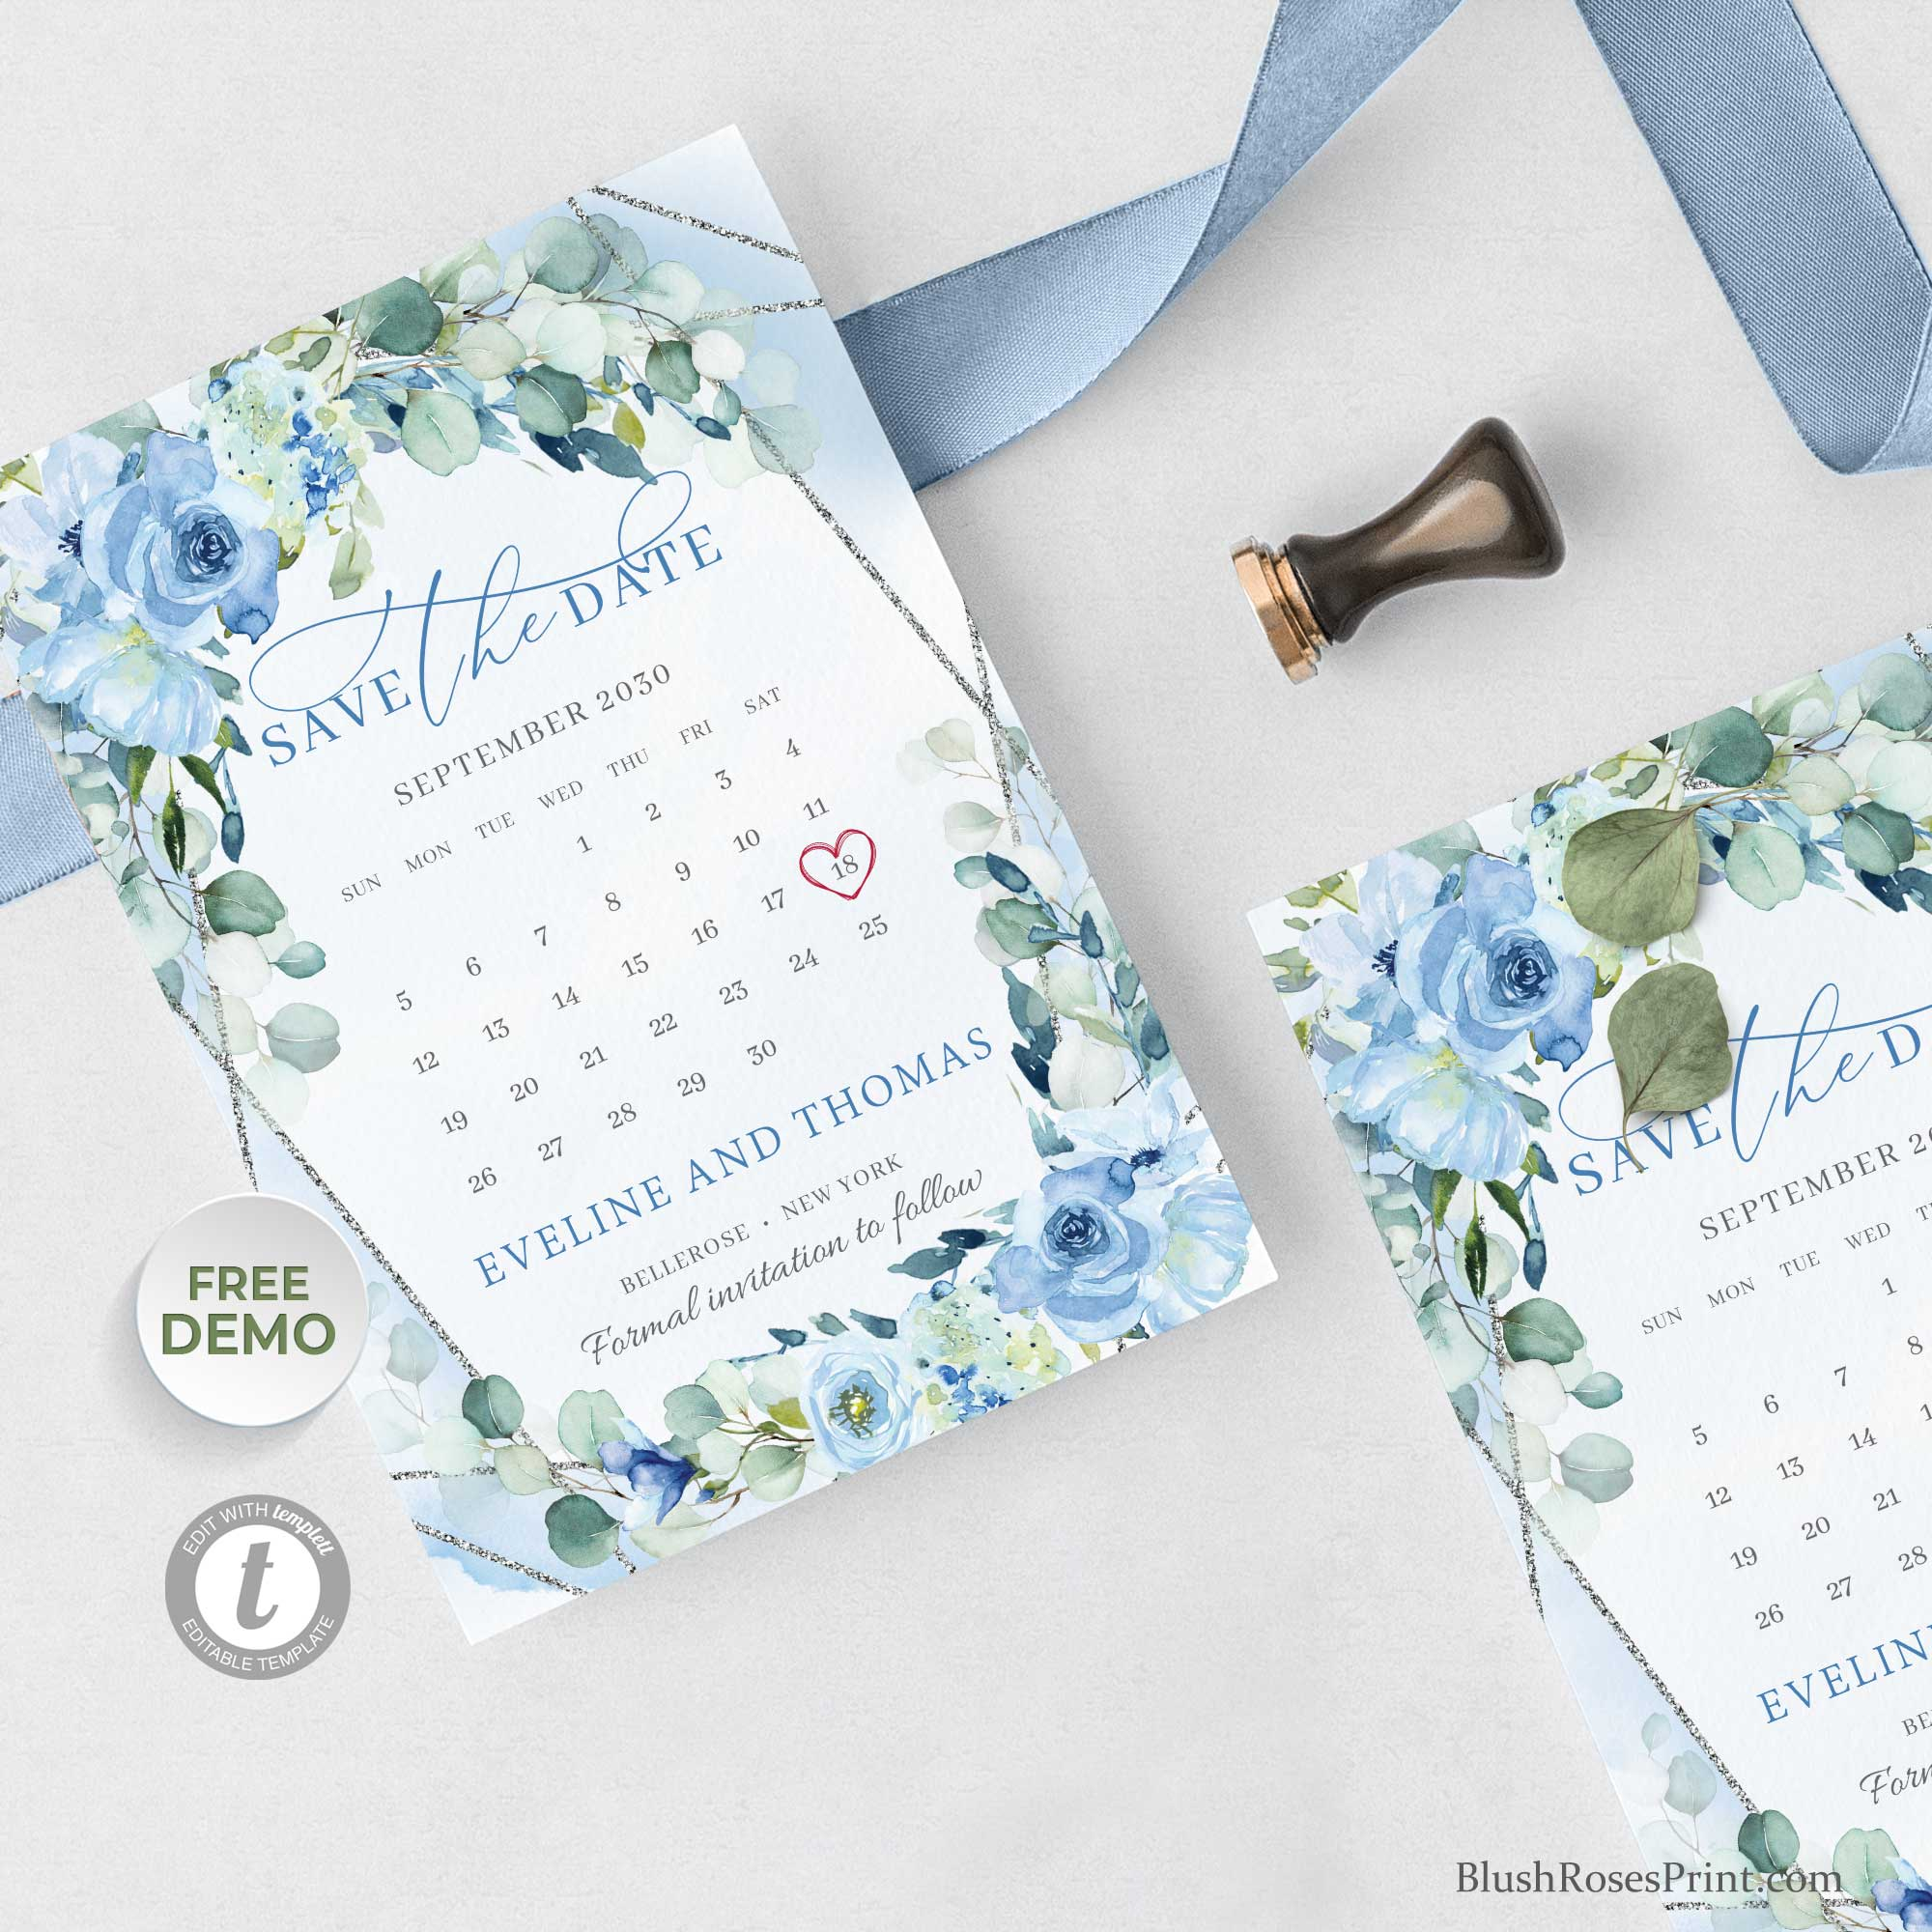 BLEIN - Silver and Blue Save the Date Cards Template, PRINTED or PRINTABLE Save the Date, Dusty Blue Floral Save our Date Cards,